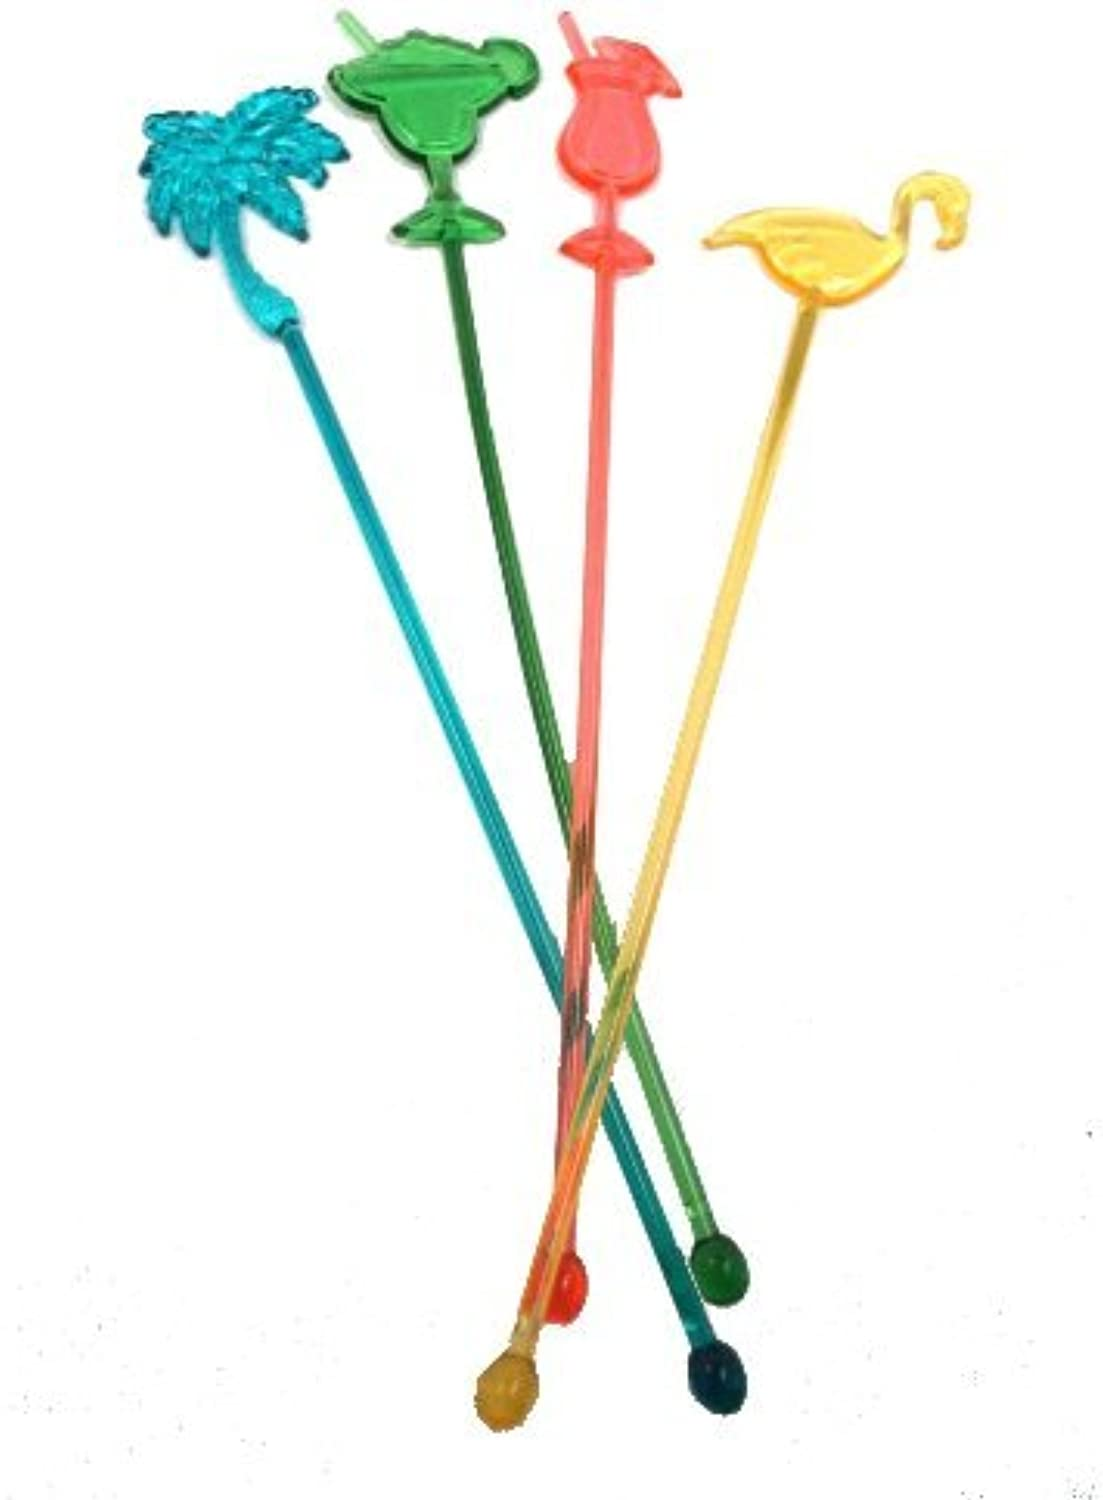 25 Assorted Tropical Luau Tiki Drink Stir Swizzle Sticks Bar  Palm Tree, Margarita, Frozen Drink Cocktail, Flamingo